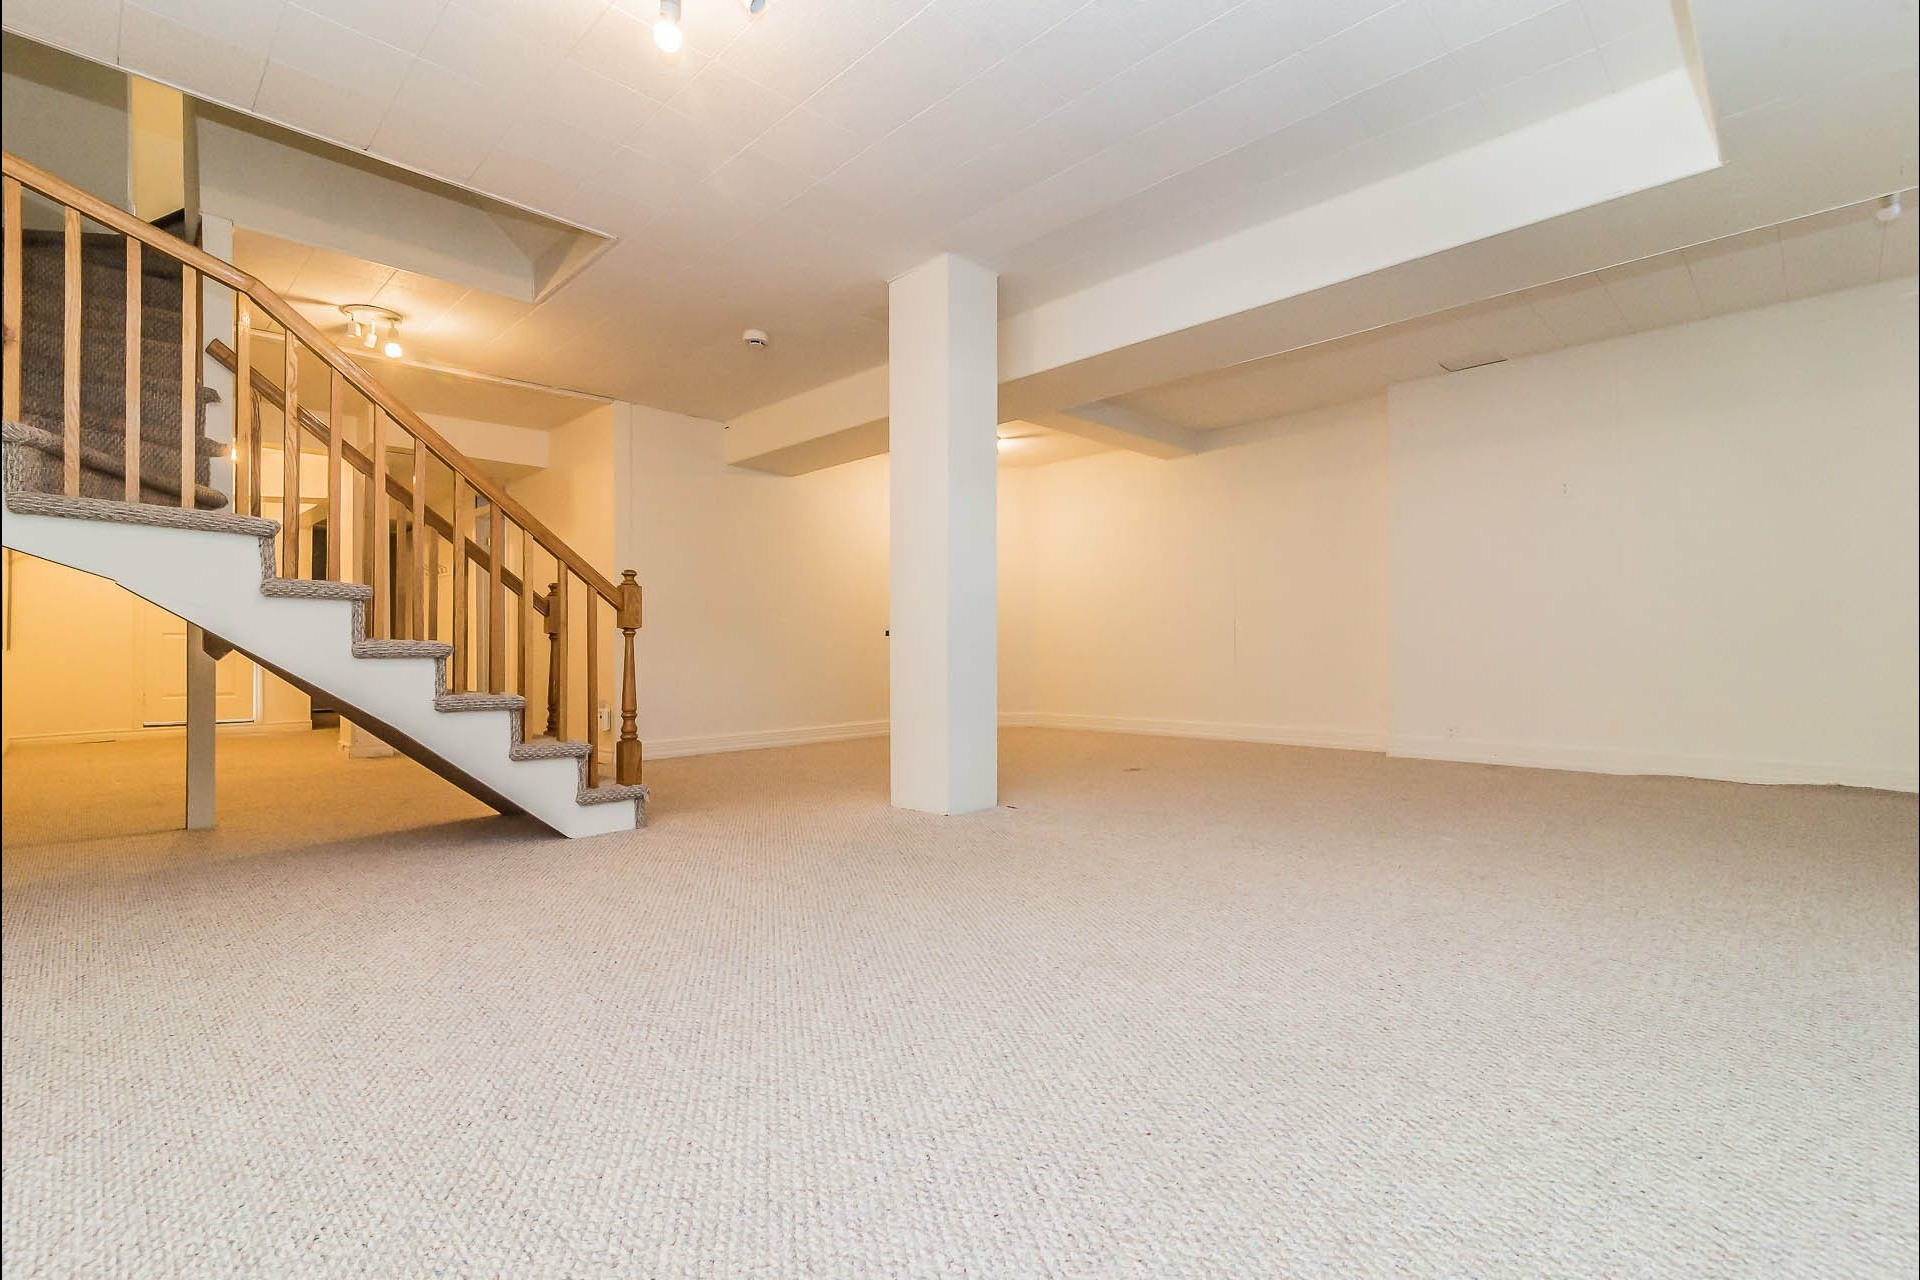 image 29 - House For rent Westmount - 8 rooms